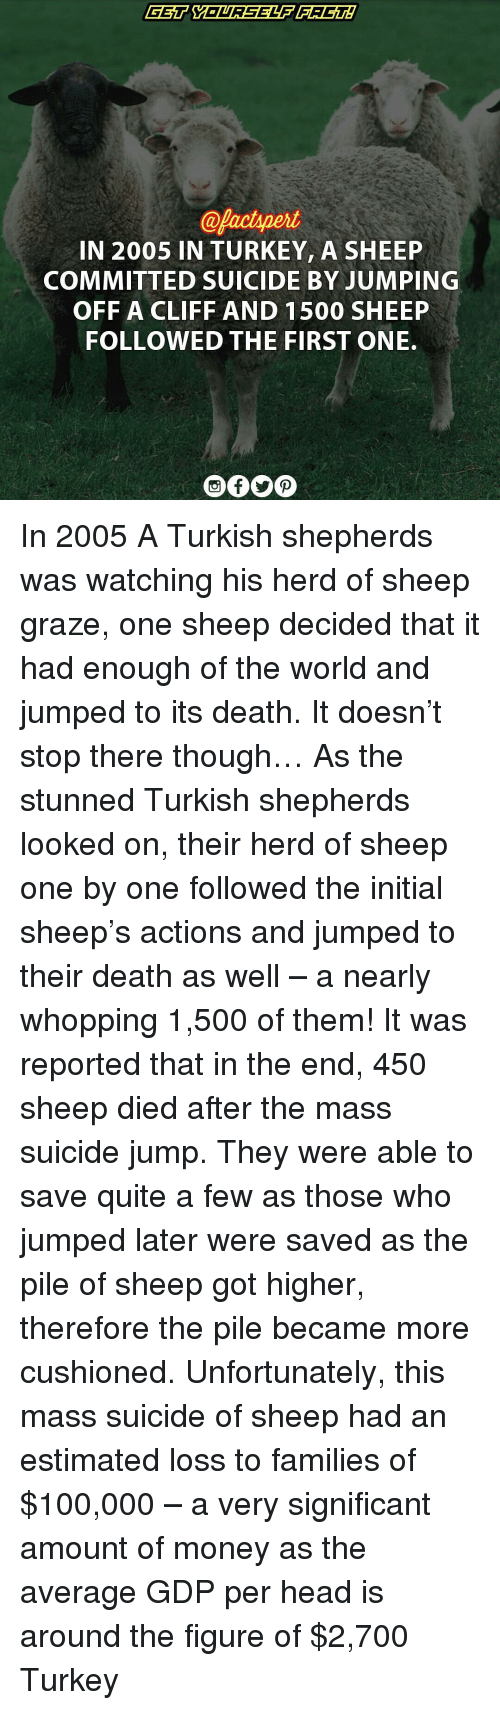 Grazing: @Pactynert  IN 2005 IN TURKEY, A SHEEP  COMMITTED SUICIDE BY JUMPING  OFF A CLIFF AND 1500 SHEEP  FOLLOWED THE FIRST ONE. In 2005 A Turkish shepherds was watching his herd of sheep graze, one sheep decided that it had enough of the world and jumped to its death. It doesn't stop there though… As the stunned Turkish shepherds looked on, their herd of sheep one by one followed the initial sheep's actions and jumped to their death as well – a nearly whopping 1,500 of them! It was reported that in the end, 450 sheep died after the mass suicide jump. They were able to save quite a few as those who jumped later were saved as the pile of sheep got higher, therefore the pile became more cushioned. Unfortunately, this mass suicide of sheep had an estimated loss to families of $100,000 – a very significant amount of money as the average GDP per head is around the figure of $2,700 Turkey